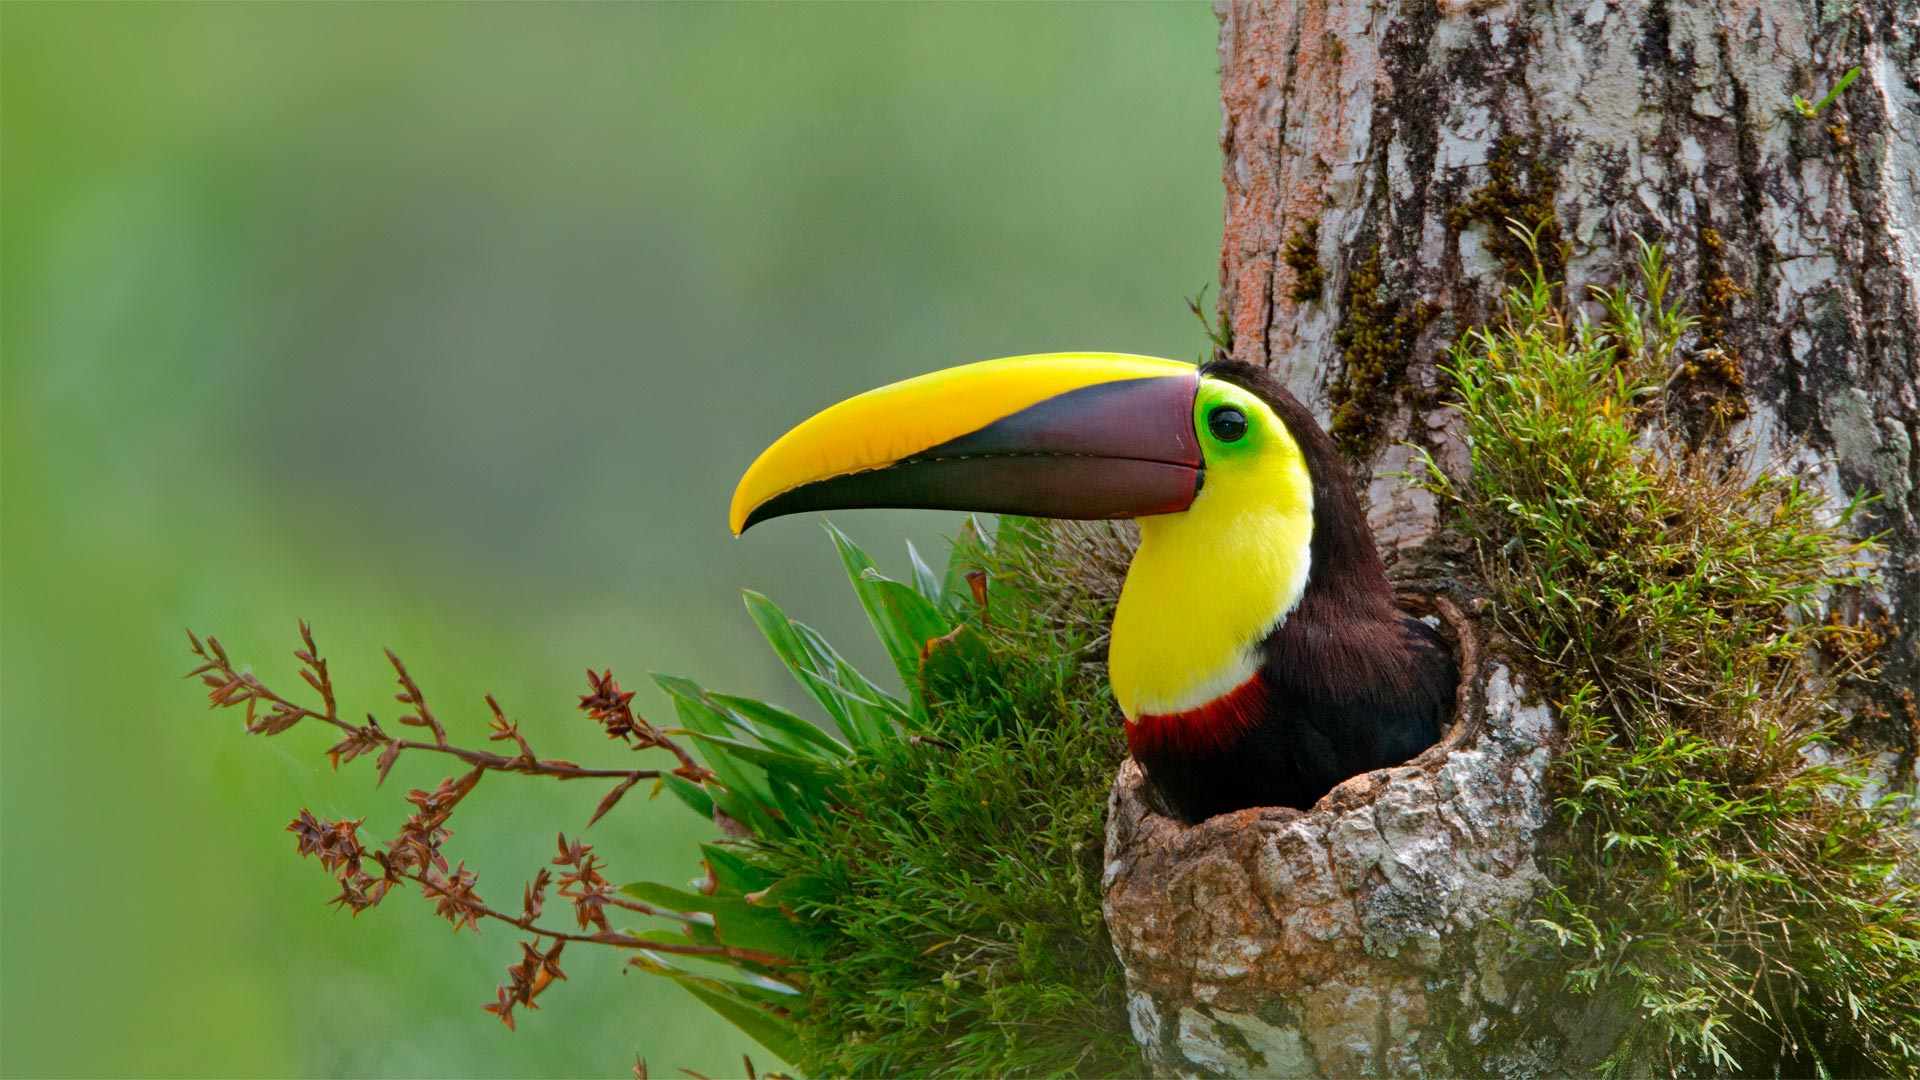 Chestnut-mandibled toucan nesting in the cavity of a tree, Costa Rica (© Greg Basco/Minden Pictures)(Bing United States)